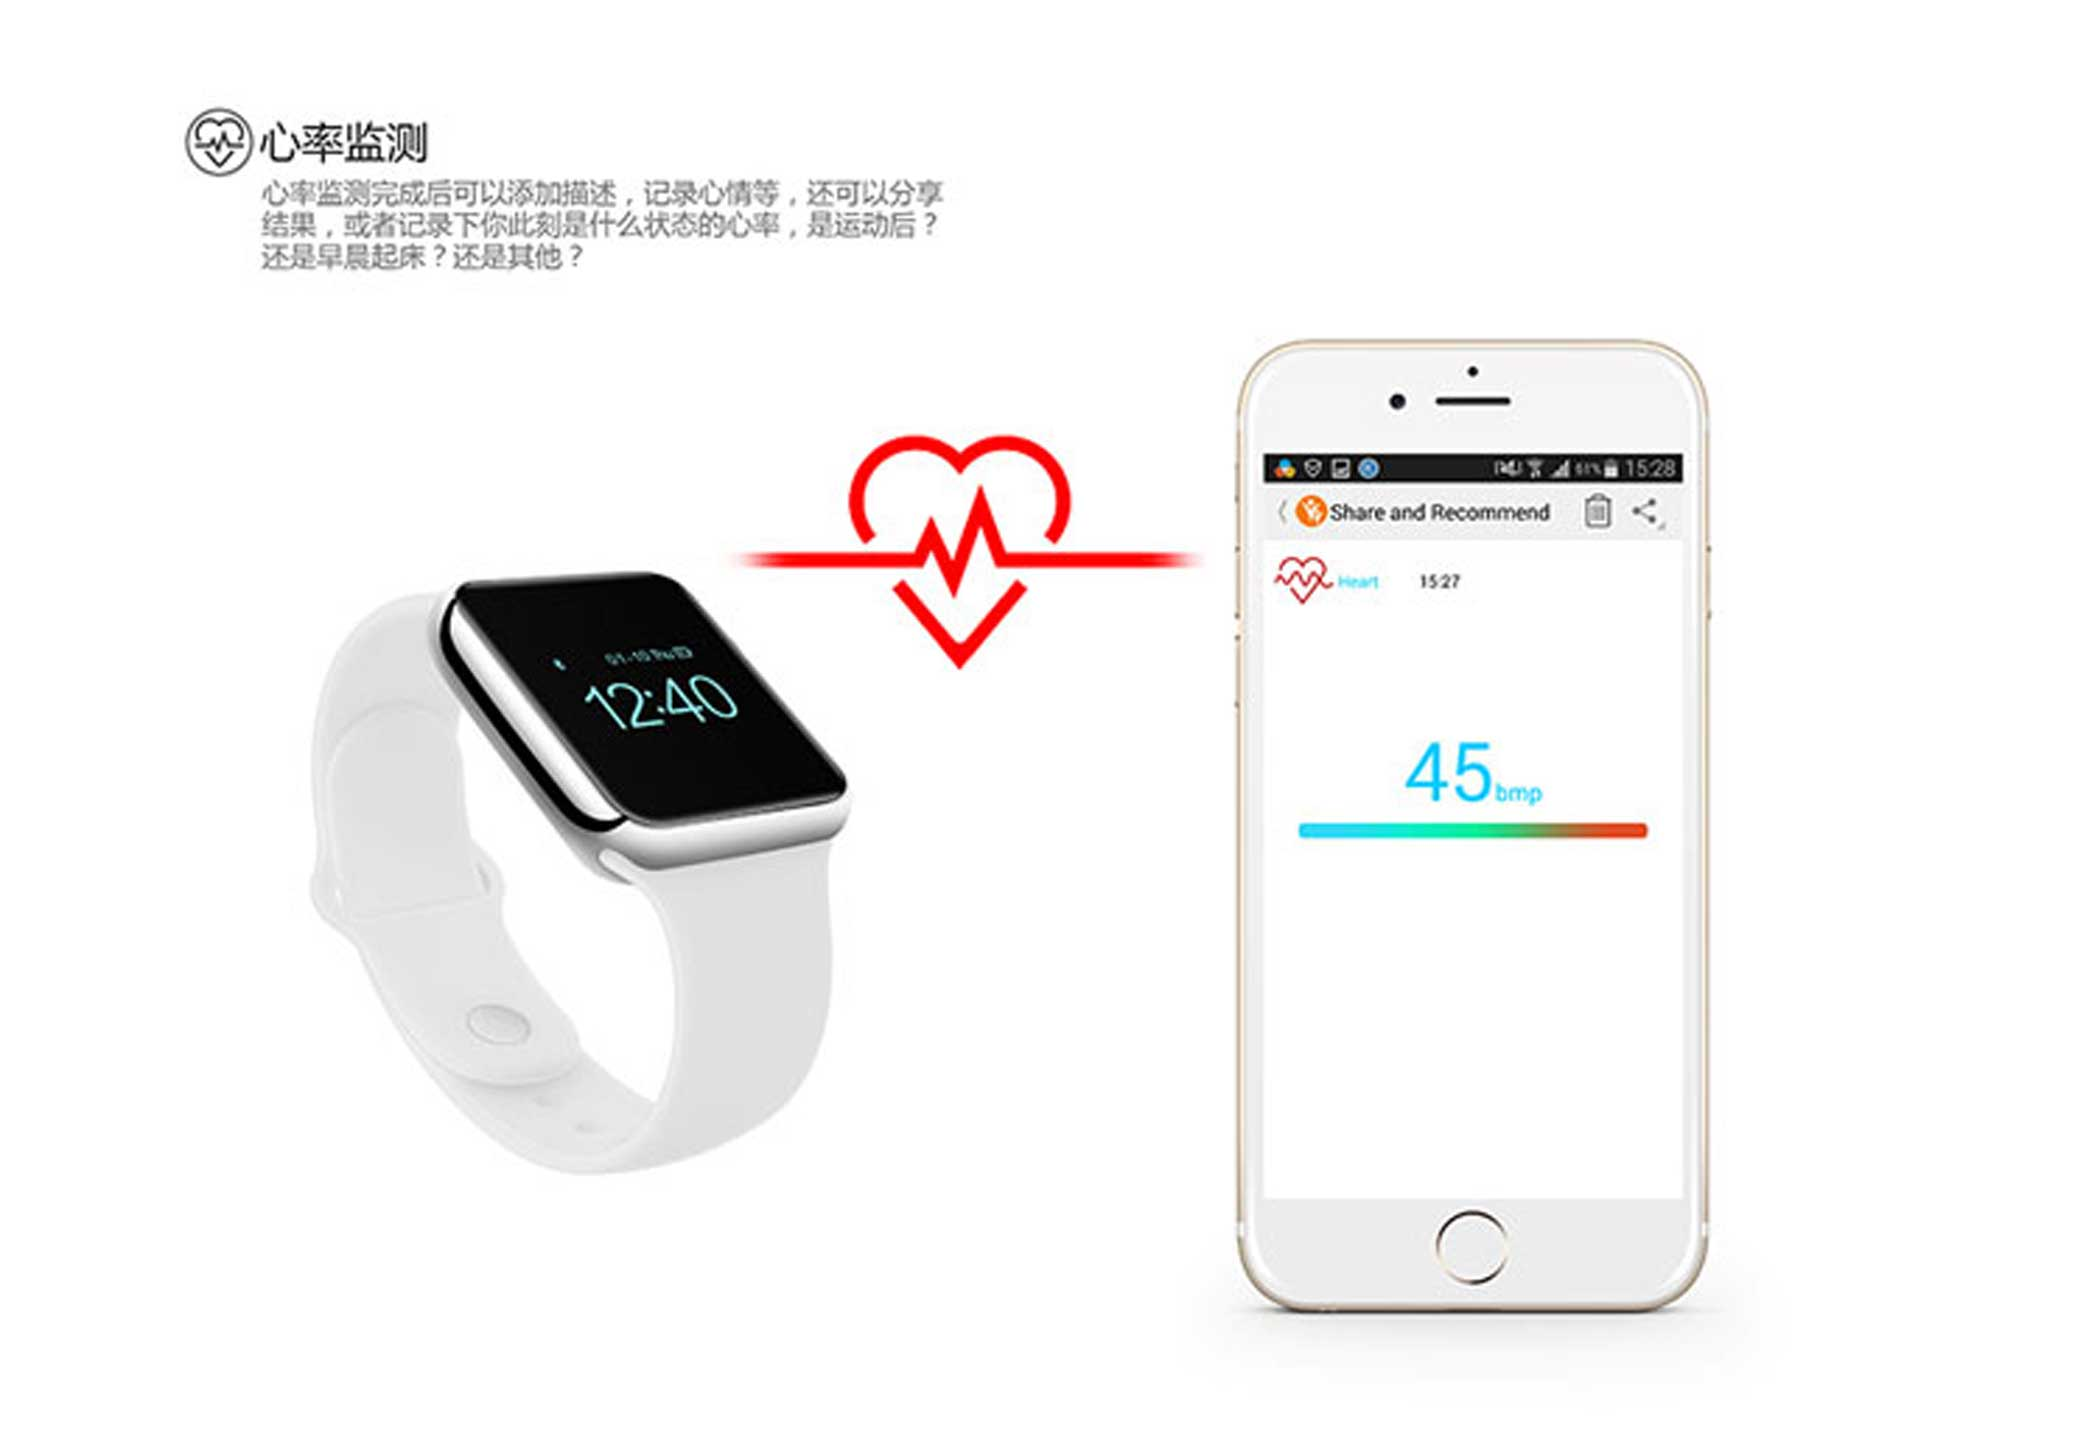 Gemini TB Creative Design's iWatch ($156) supports QQ and WeChat and is compatible with Android, Xiaomi and iOS phones. The ad doesn't claim the wearable is an Apple Watch specifically.